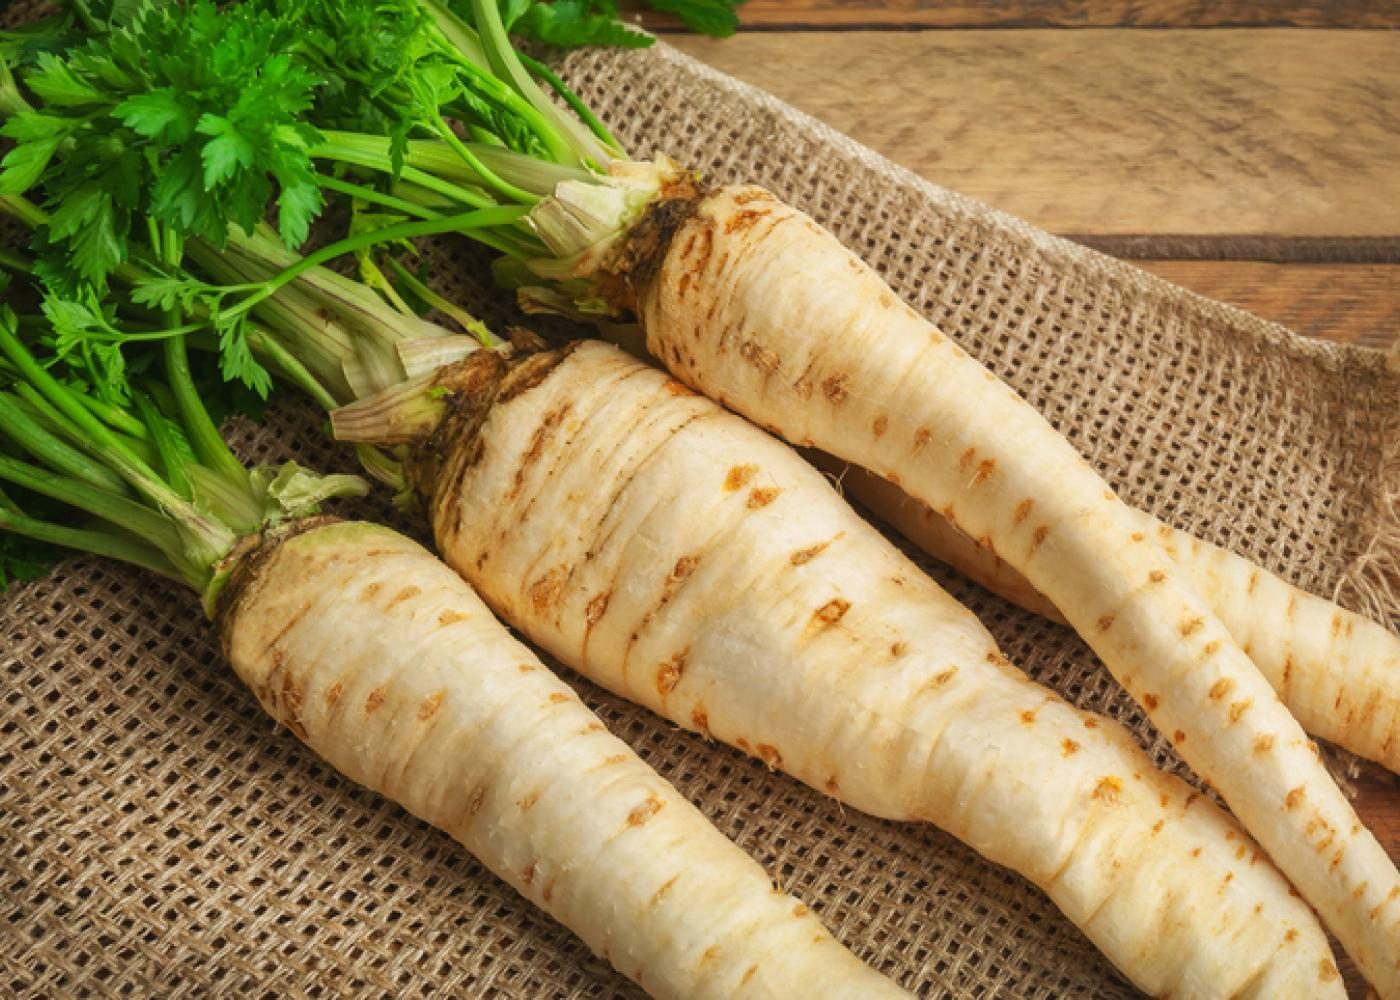 parsnips with green tops